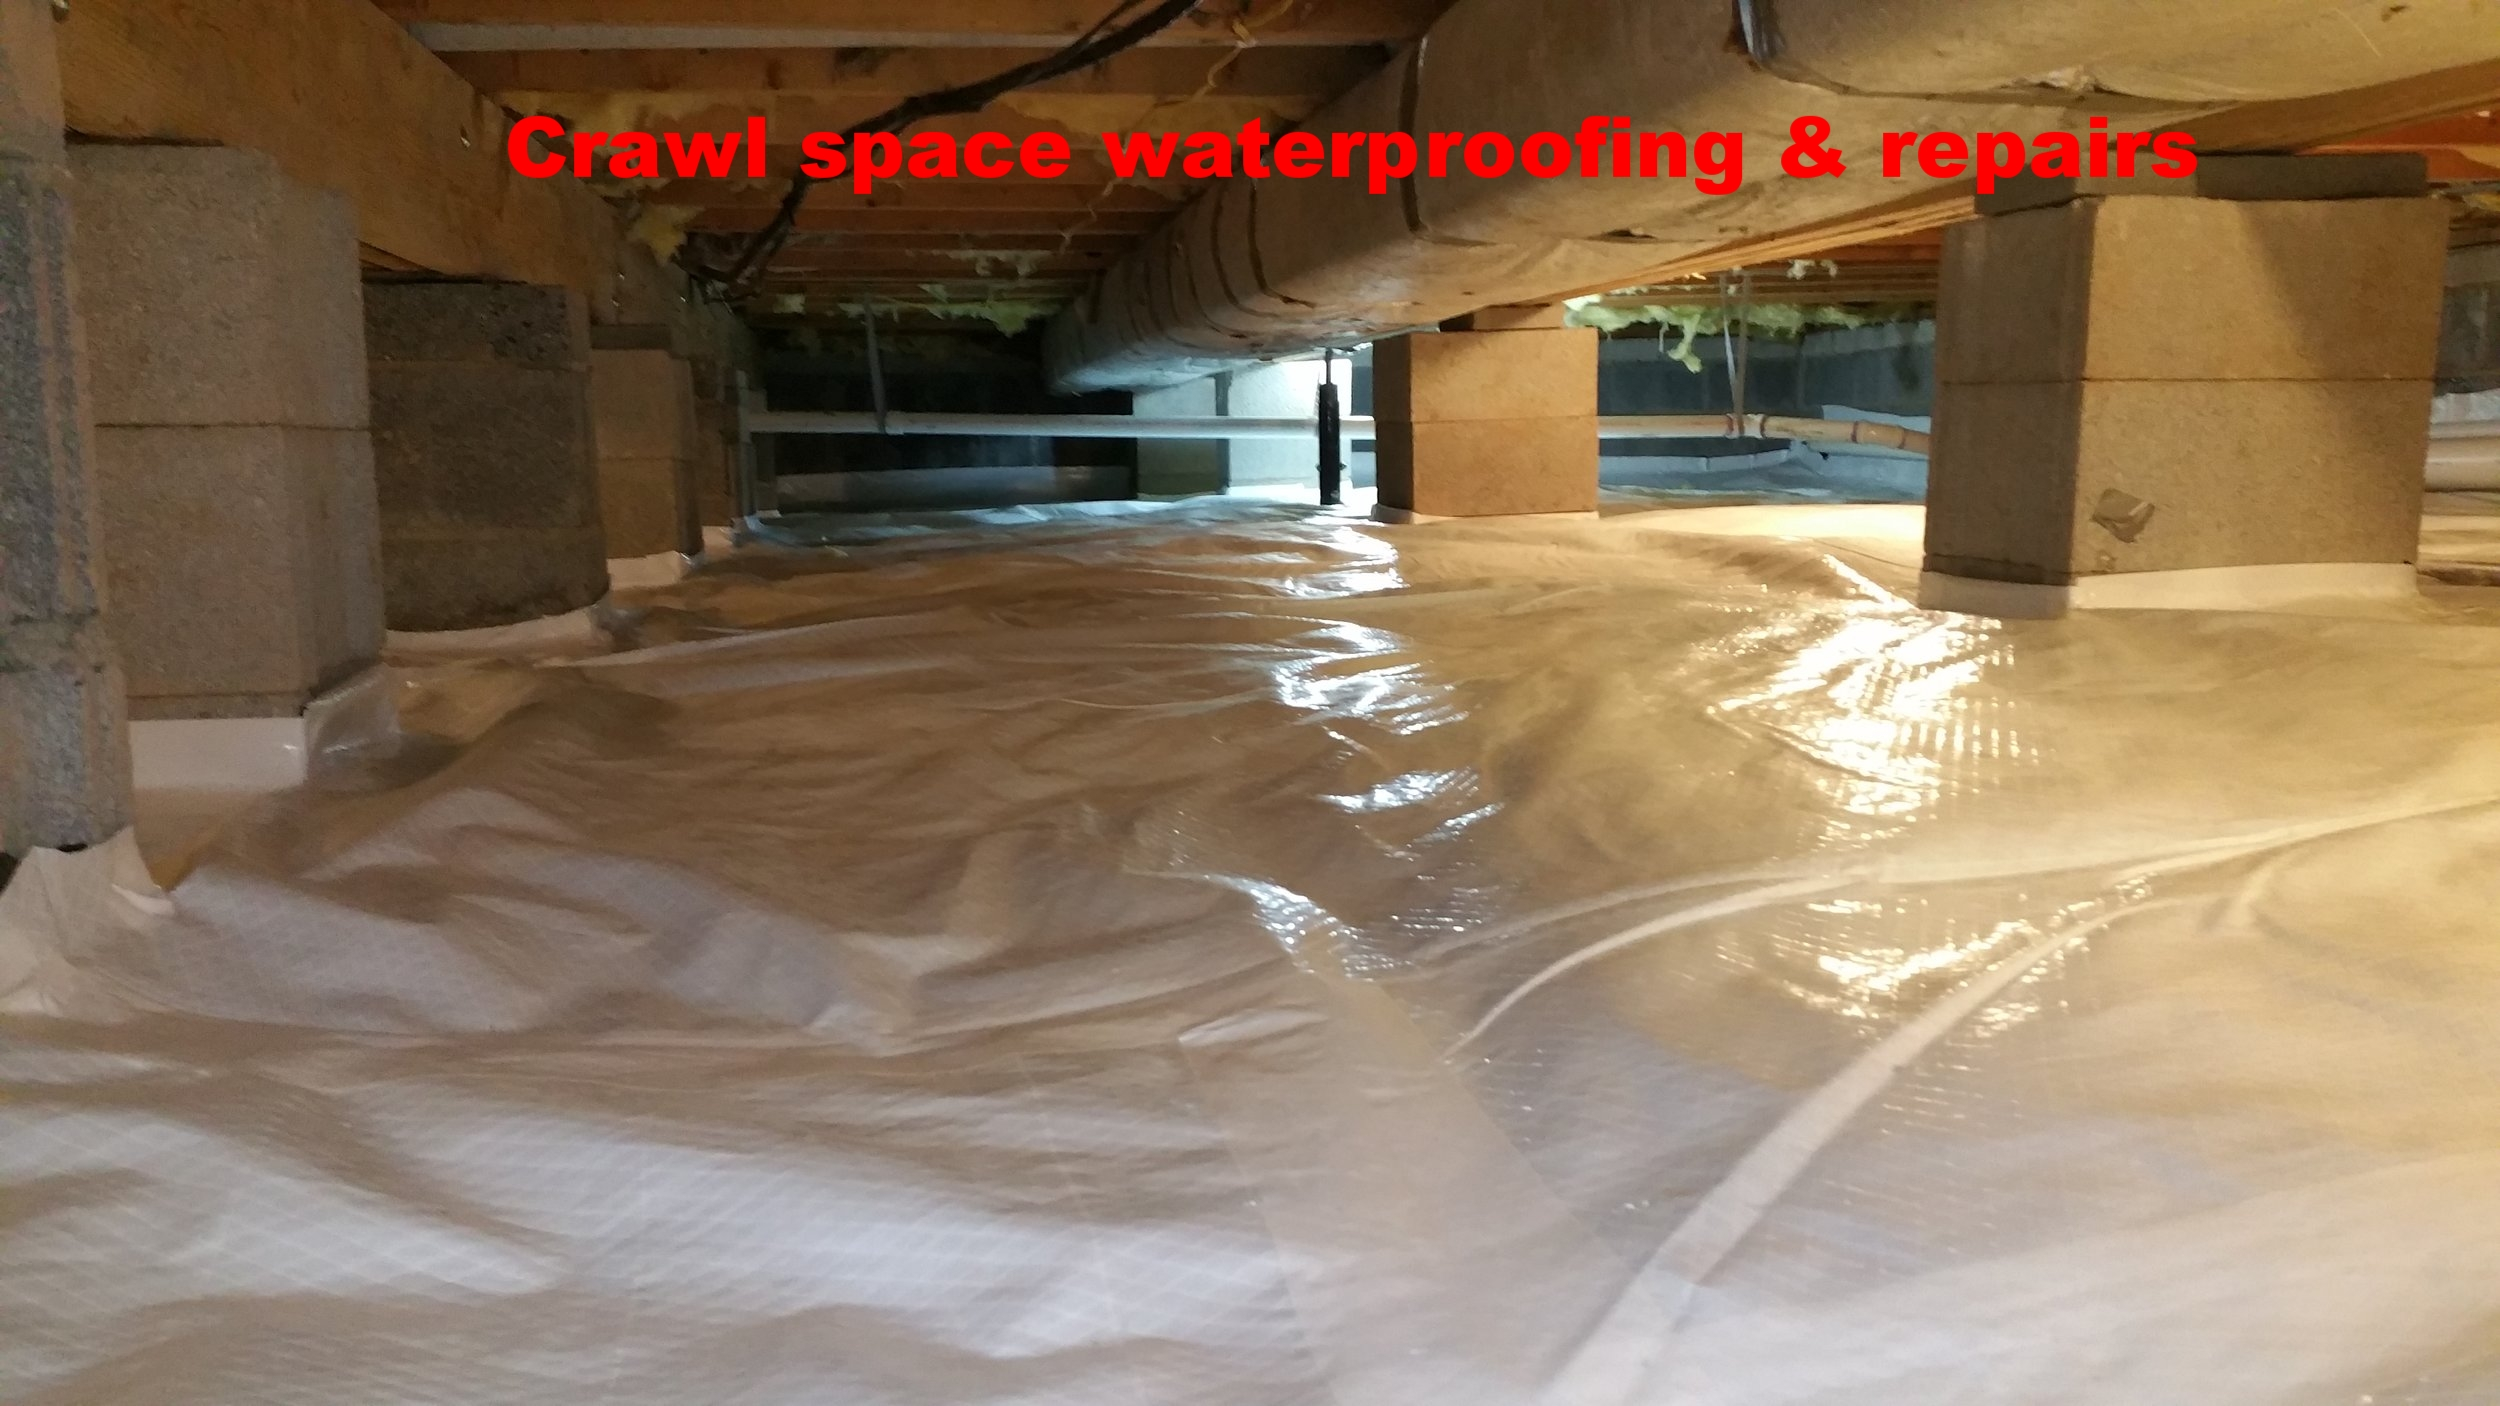 Crawl space waterproofing,